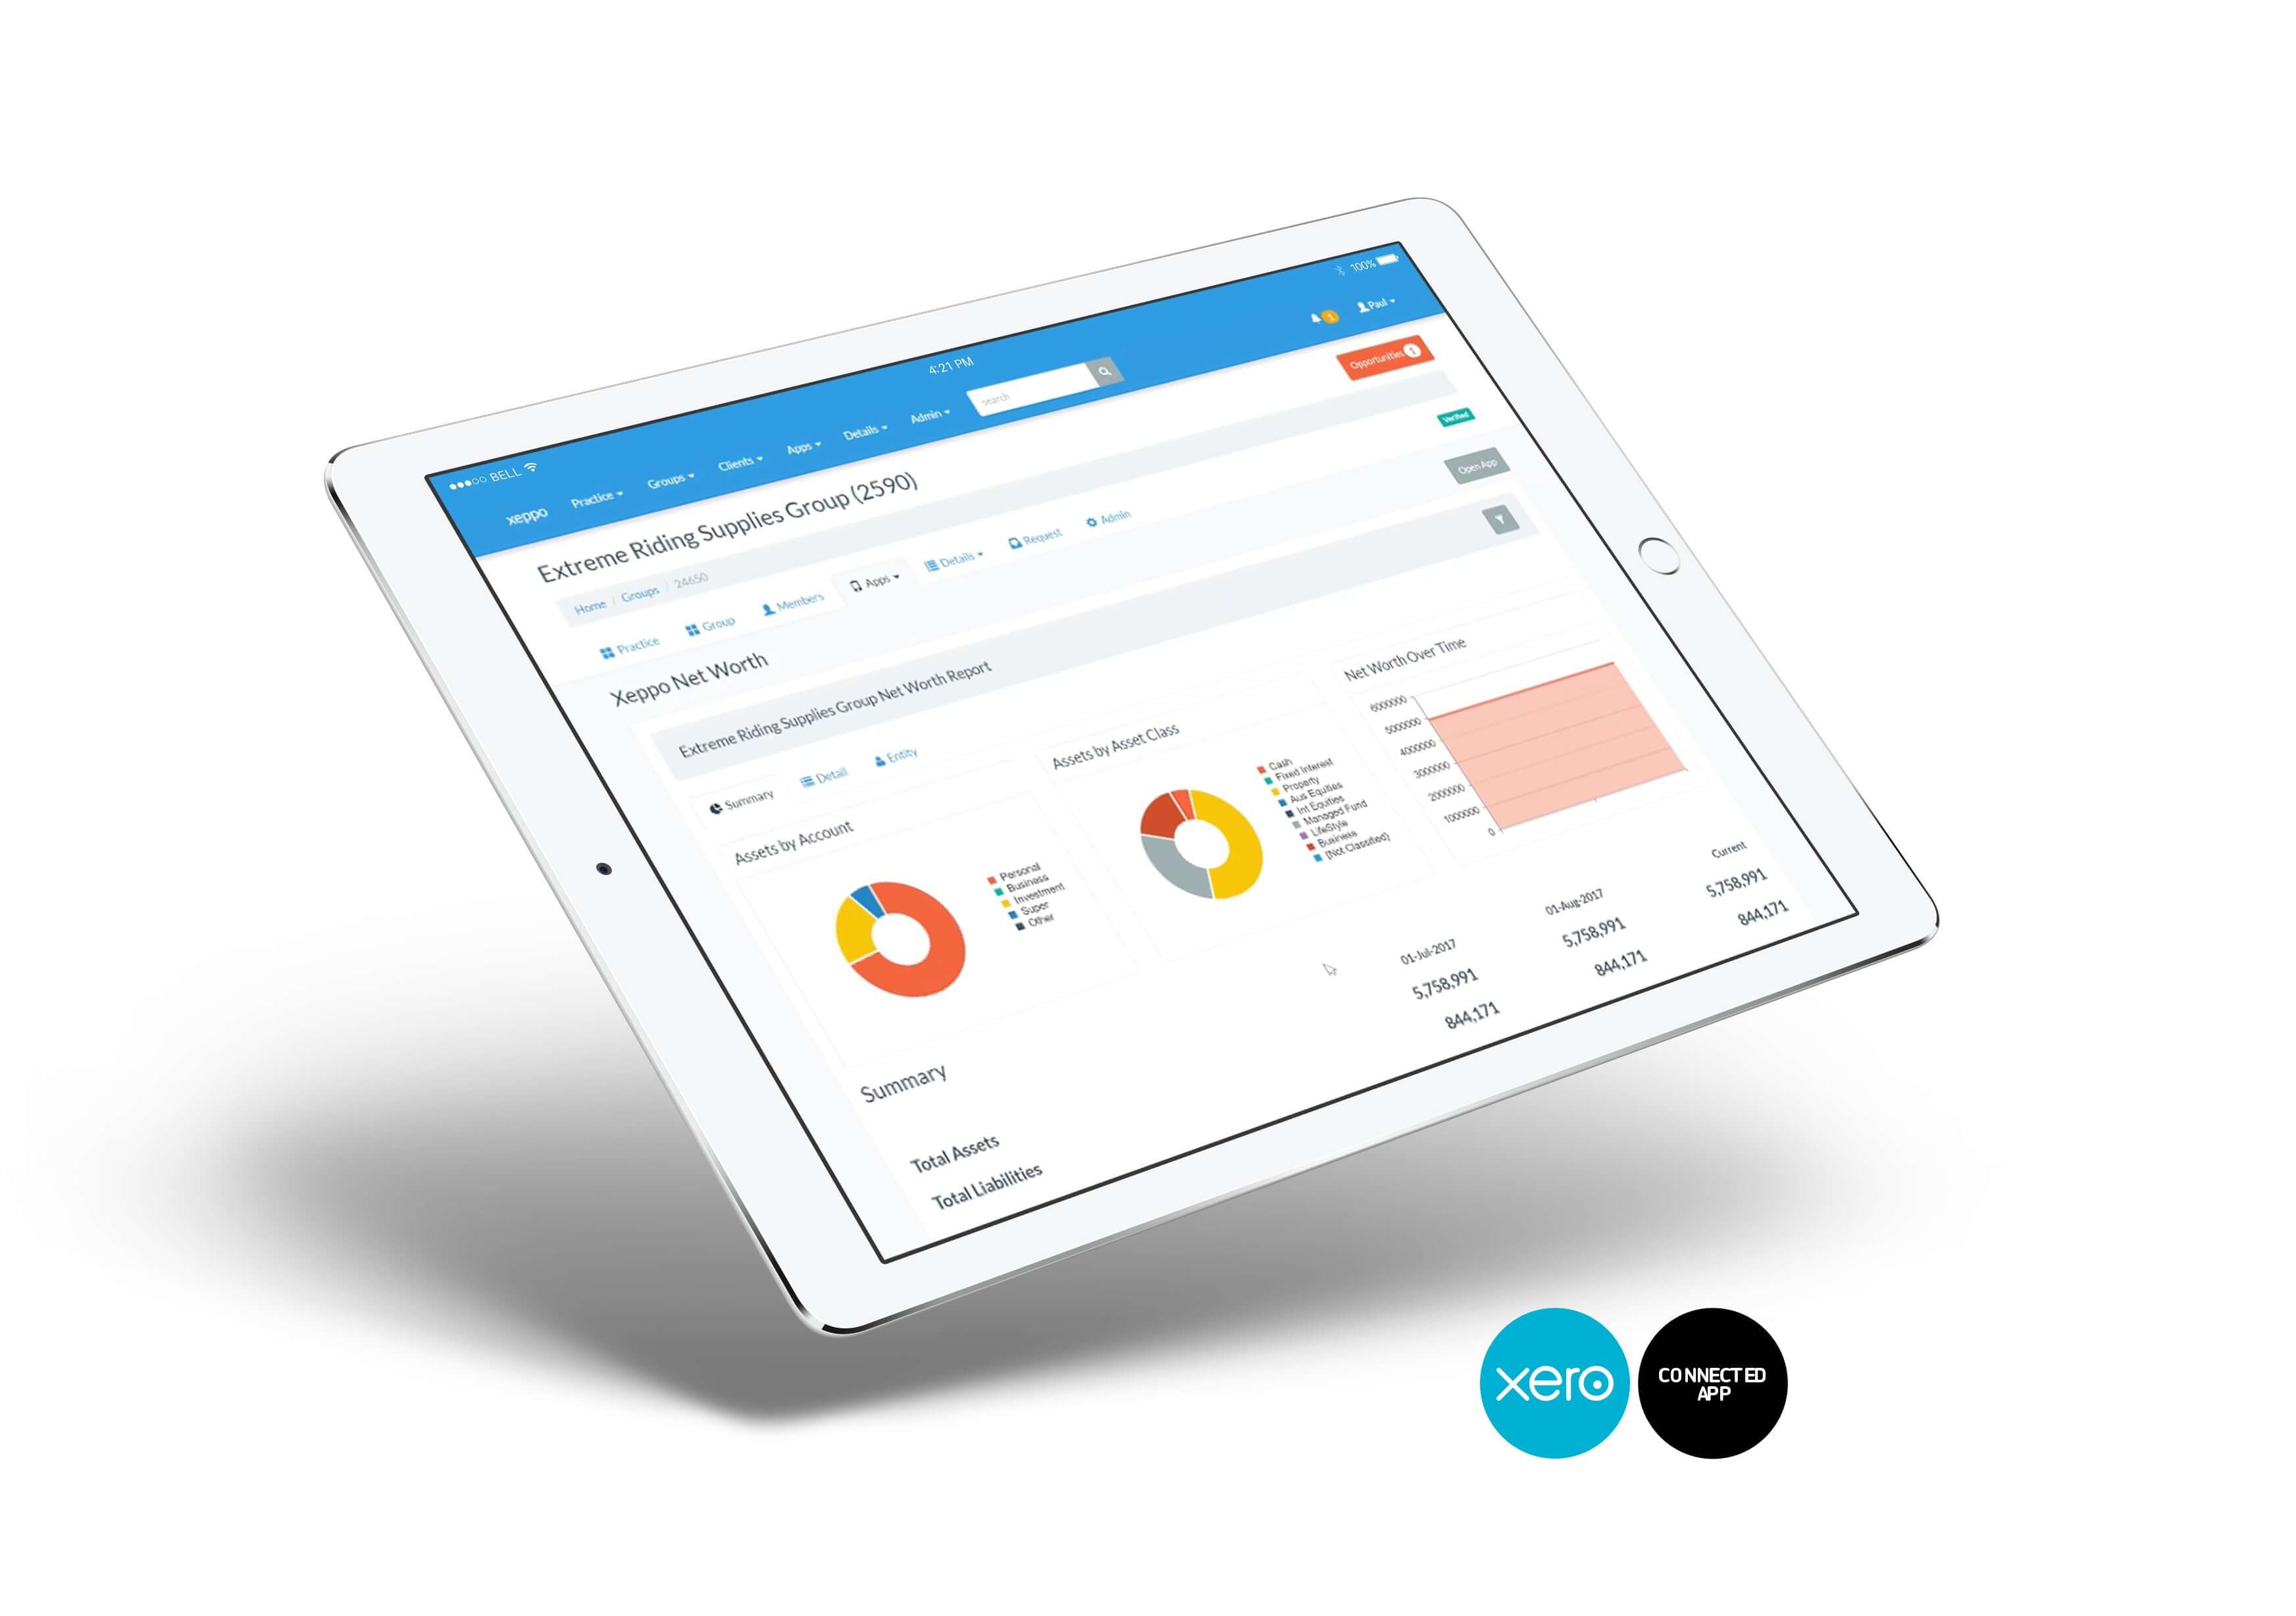 Manage client relationships and drive business opportunities with Xeppo + Xero